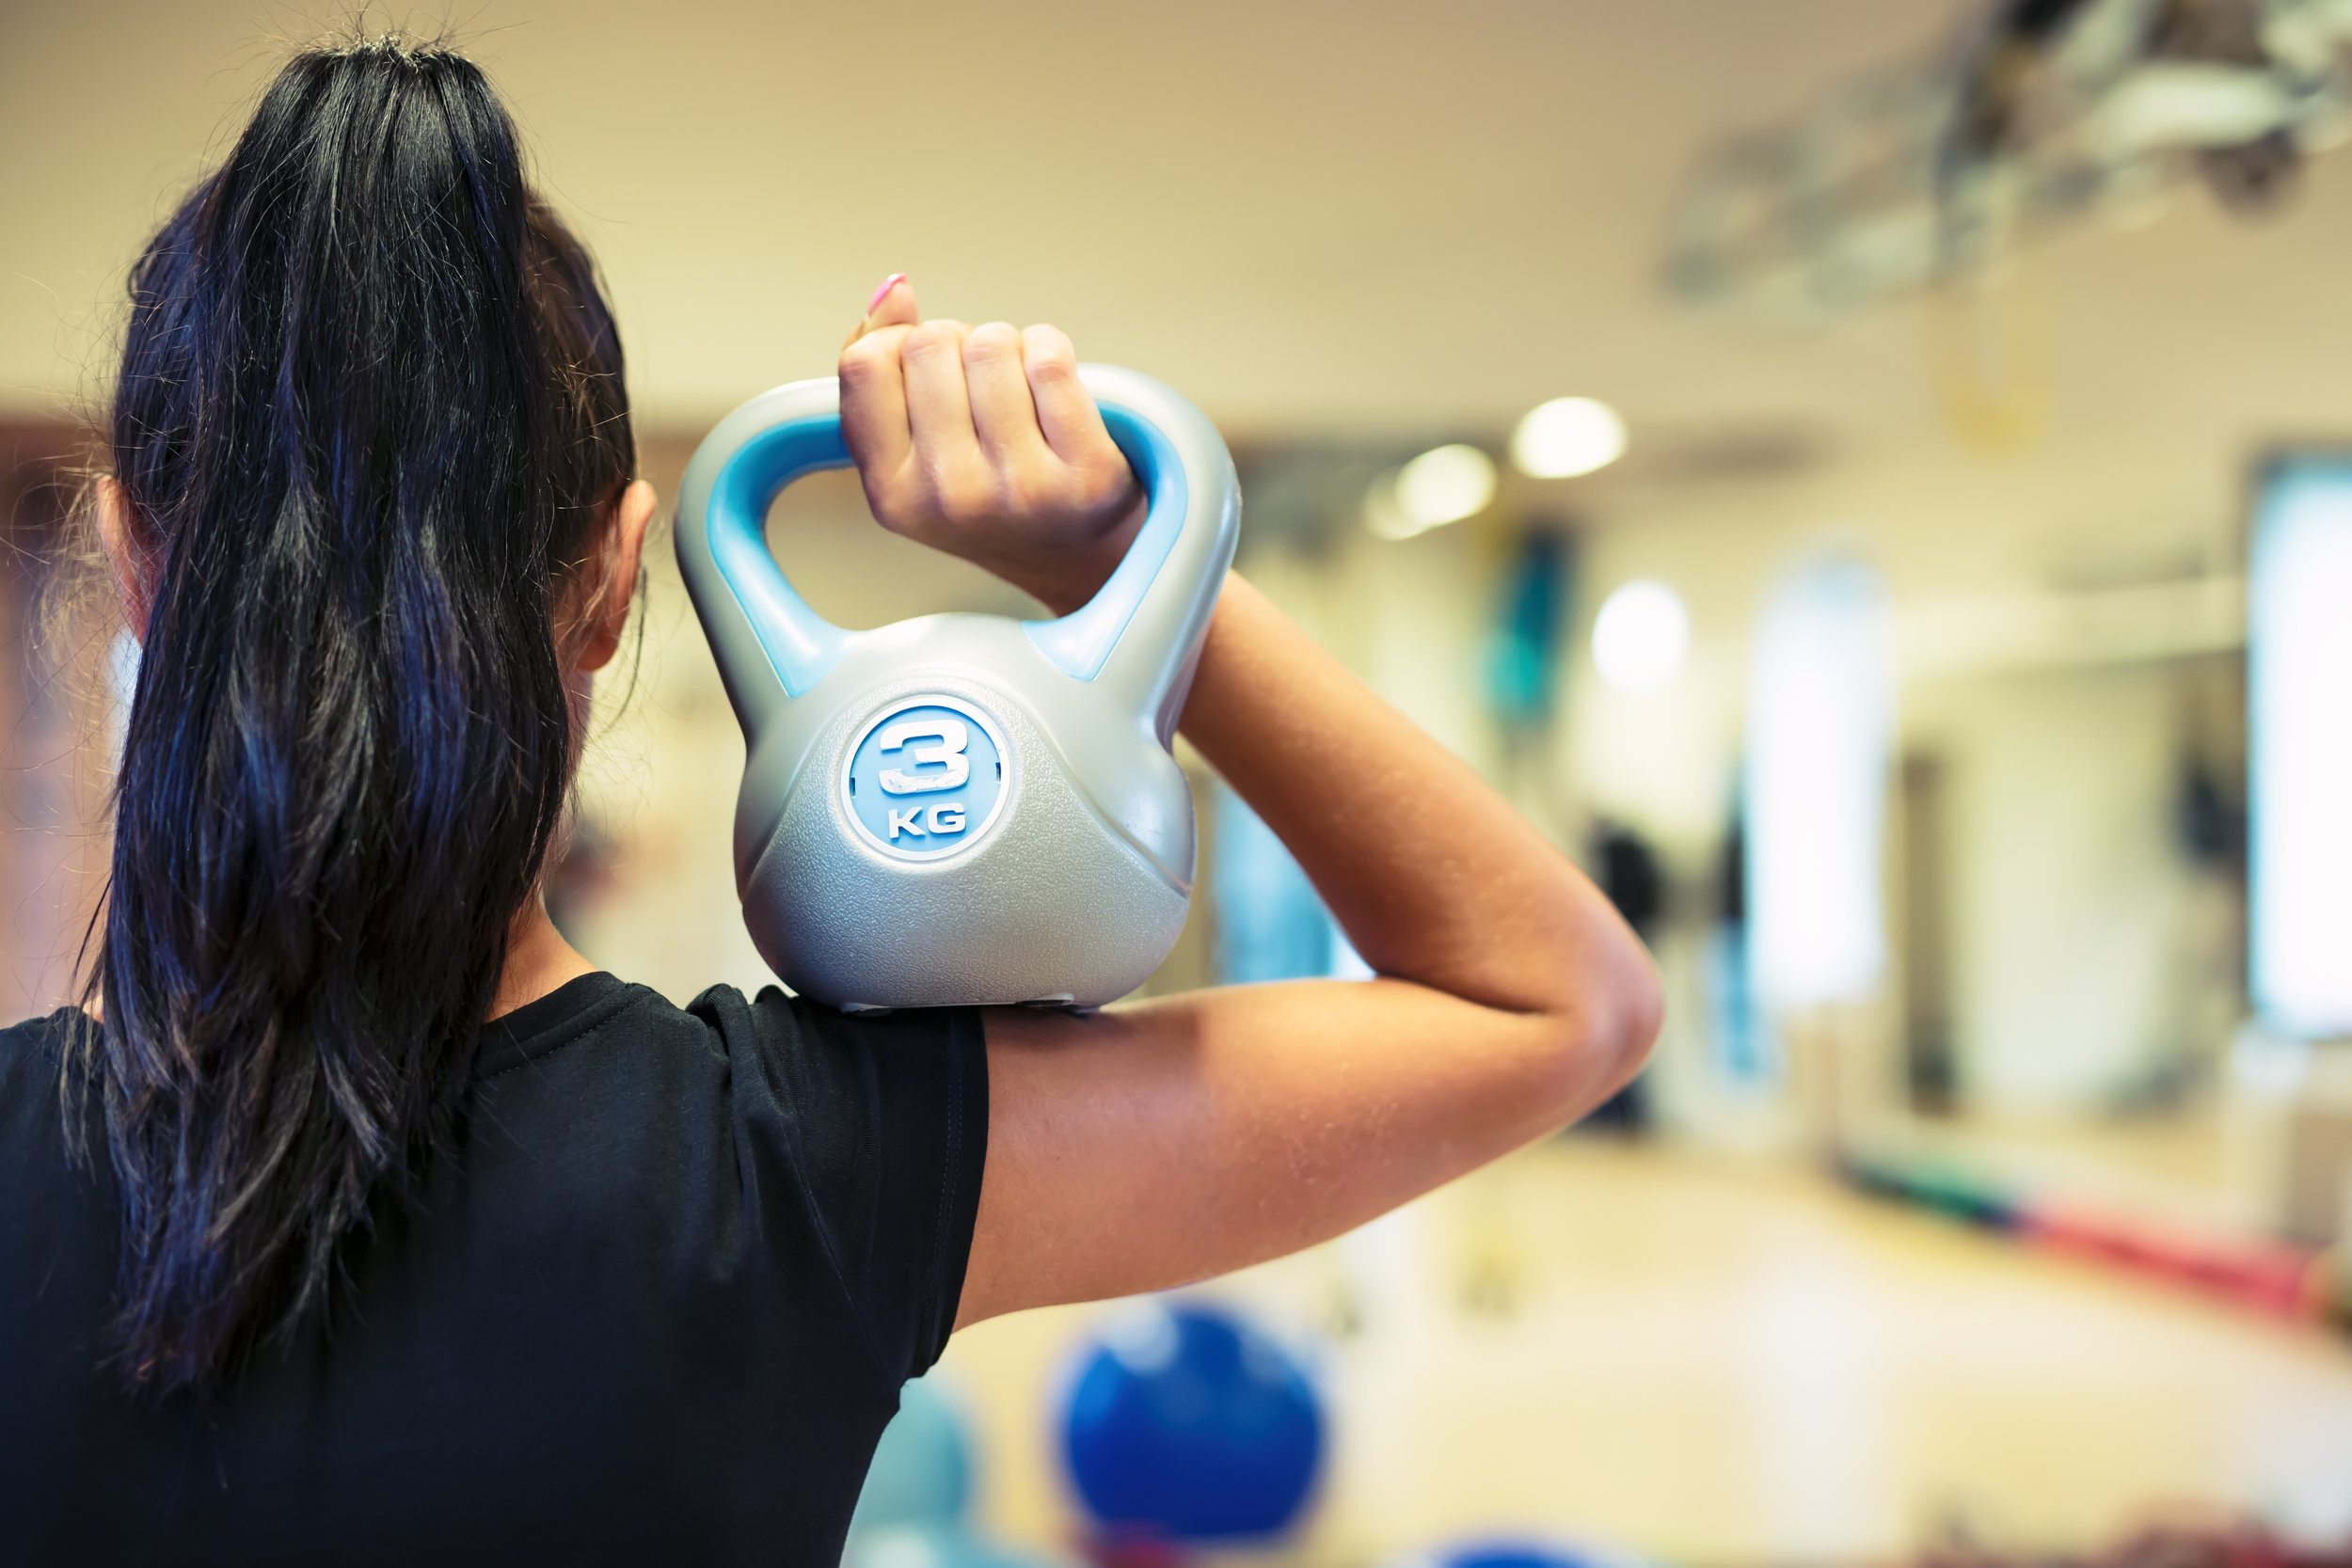 New to the gym and want to develop your confidence? - Health assessment and three 1-hour personal training sessions for only £99